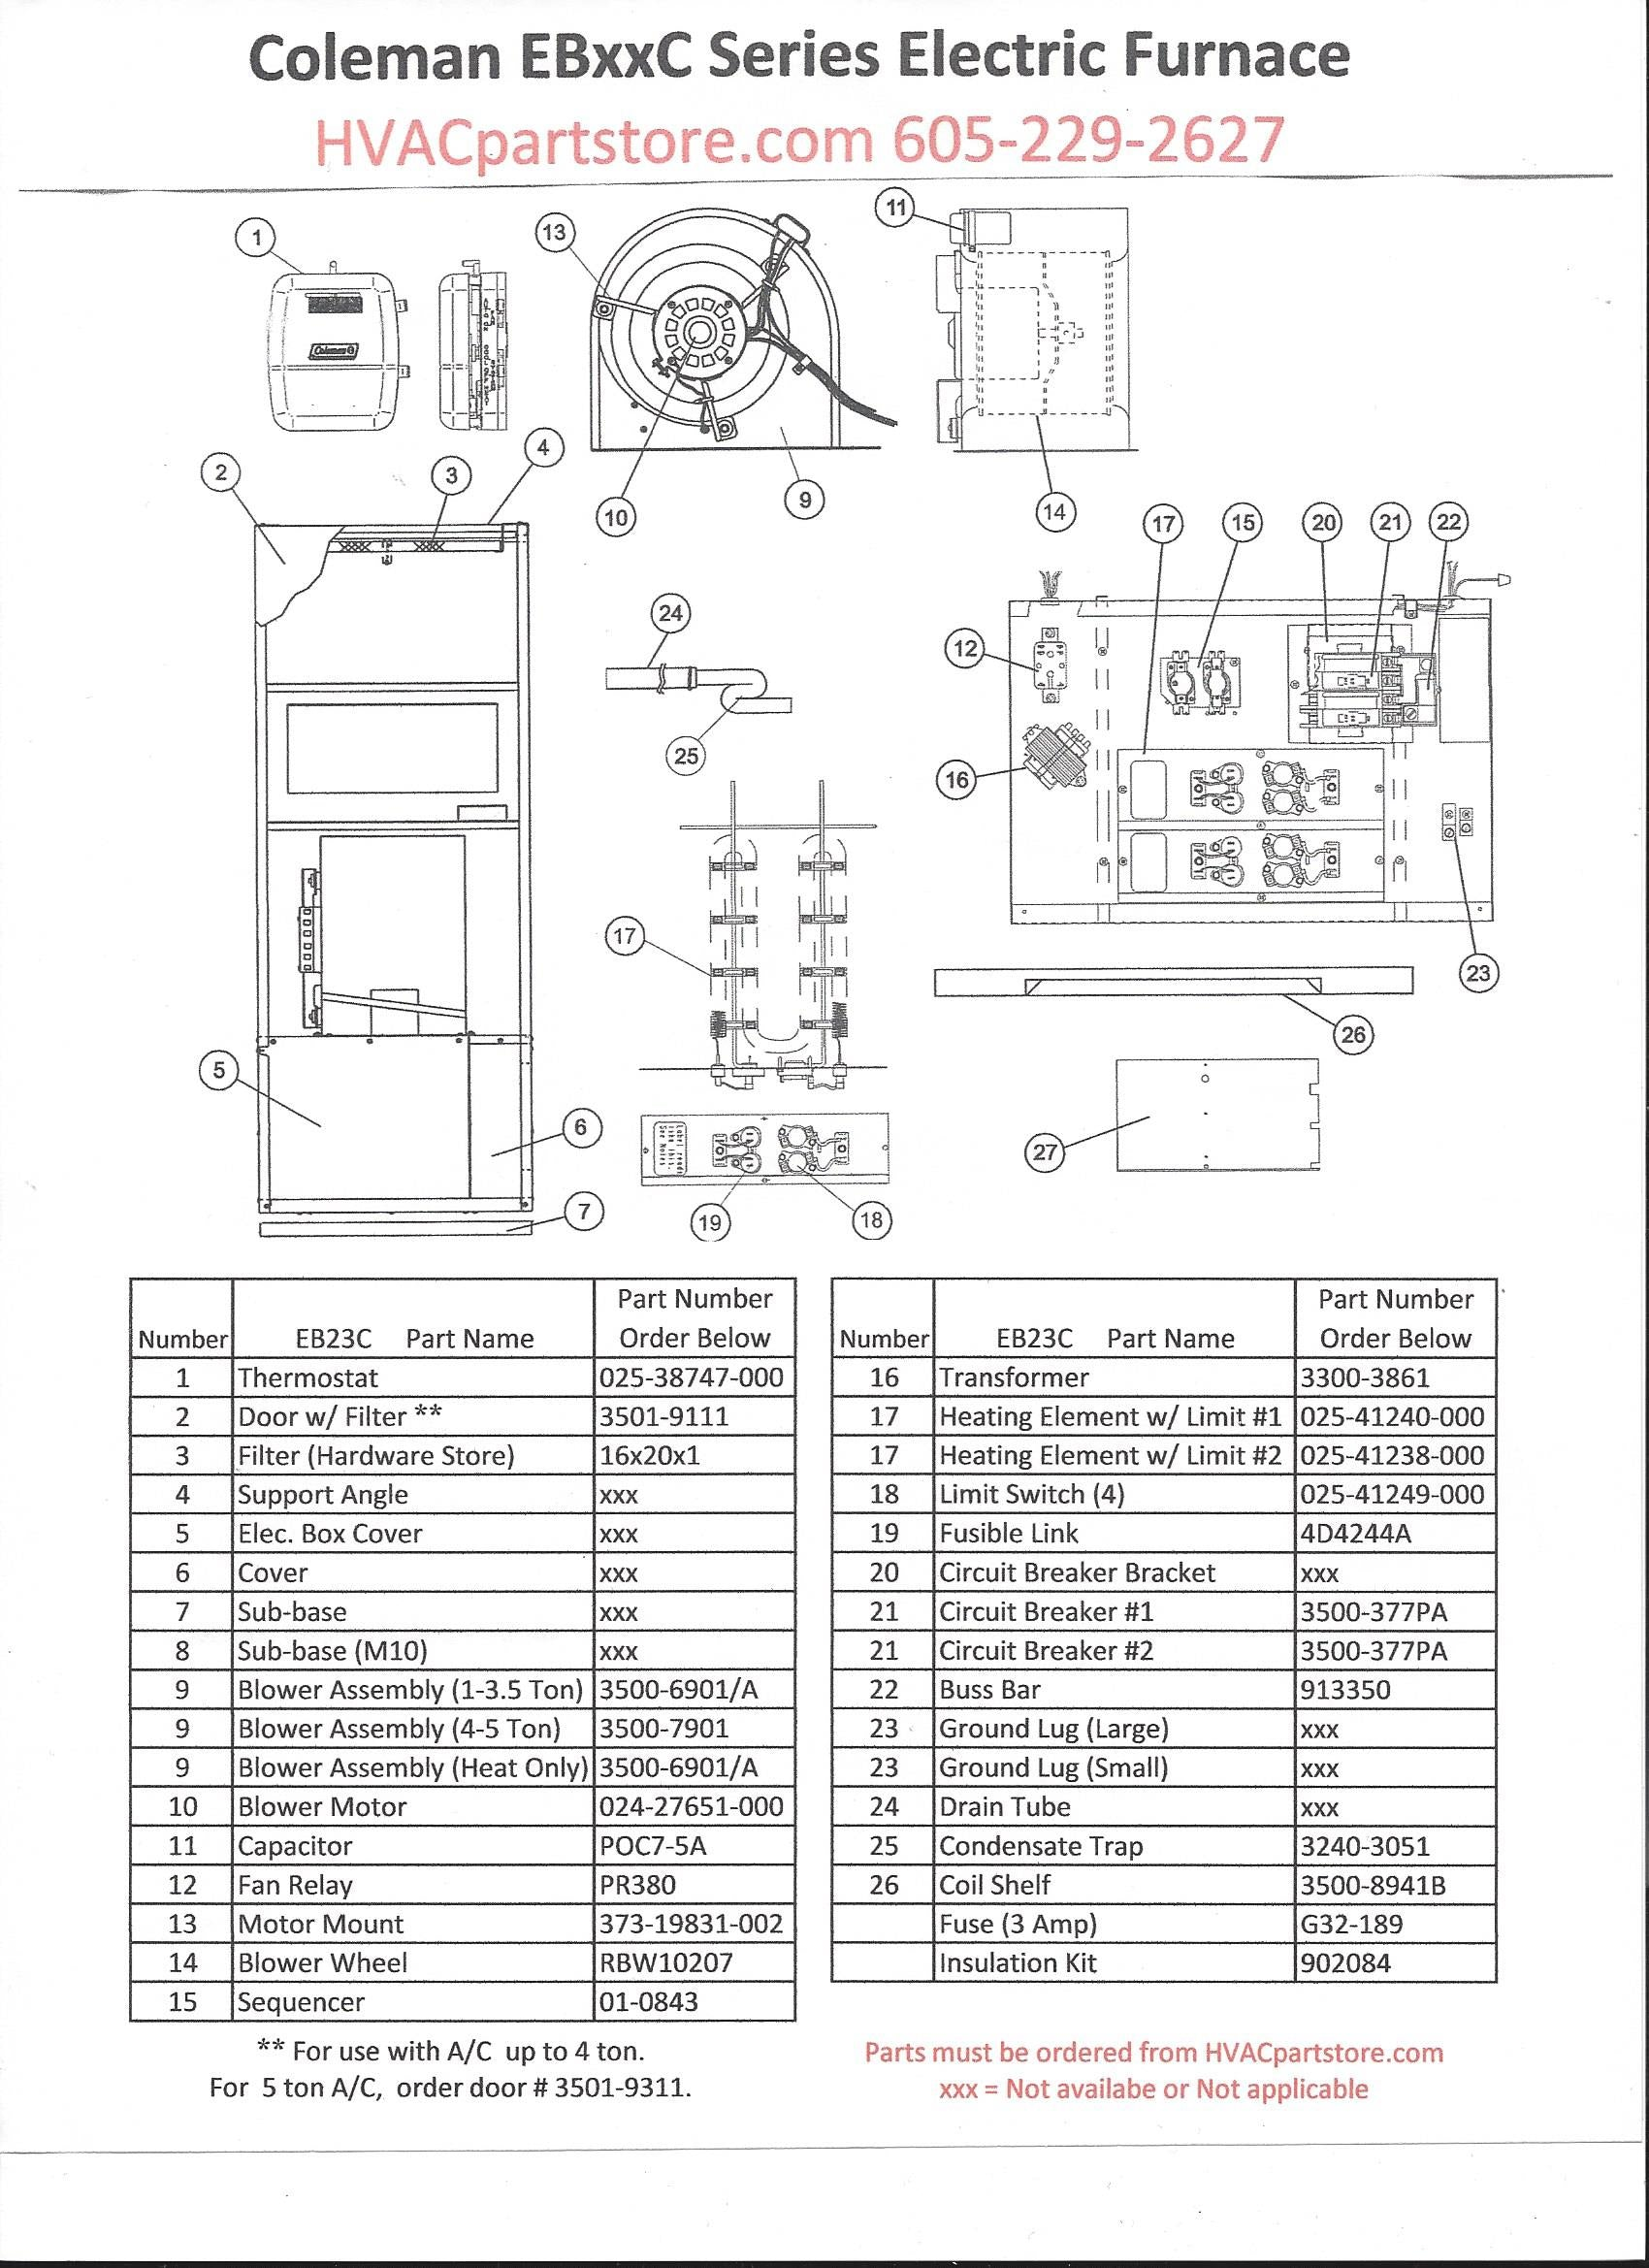 eb23c coleman electric furnace parts  u2013 hvacpartstore